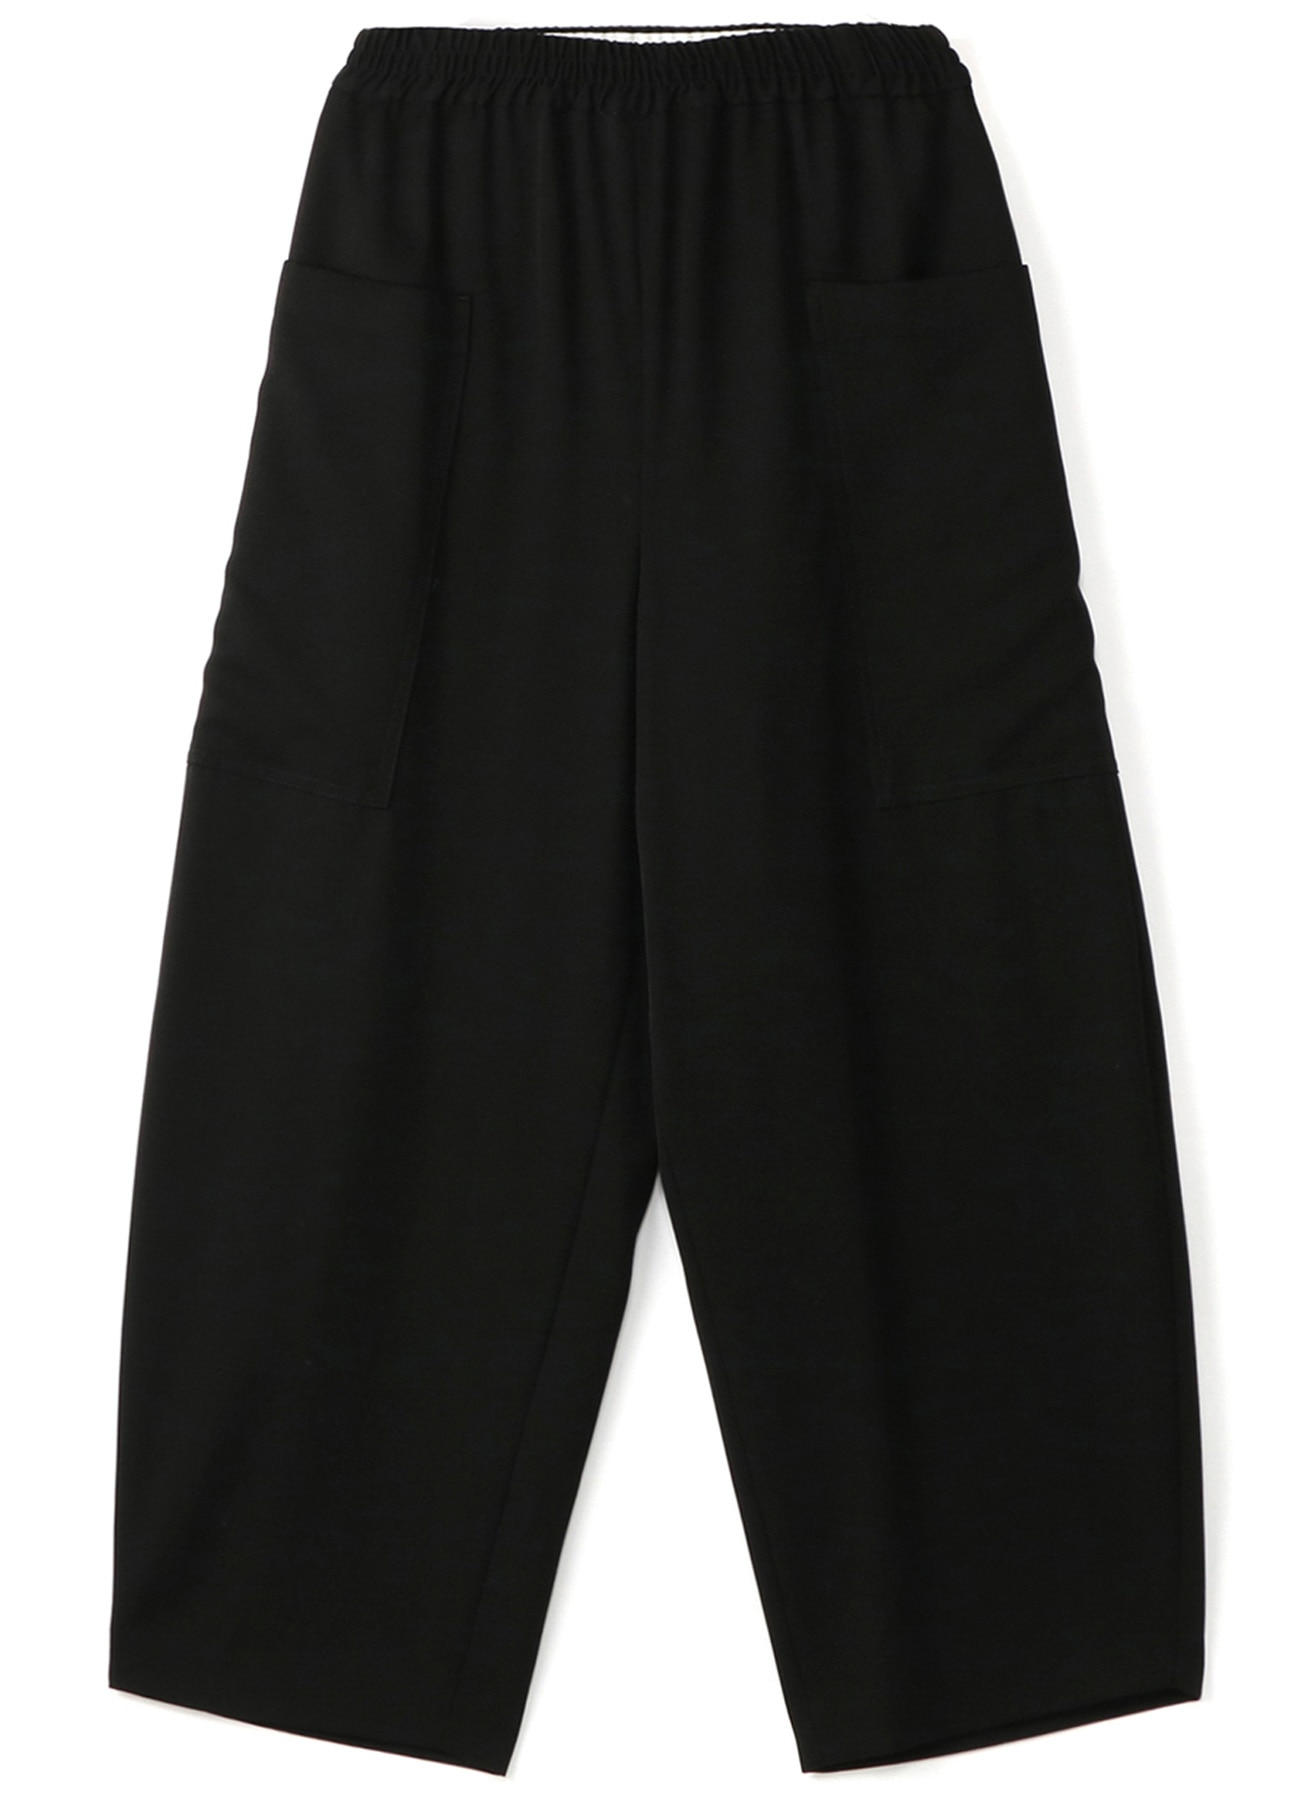 TAXEDO CROSS POCKET PANTS